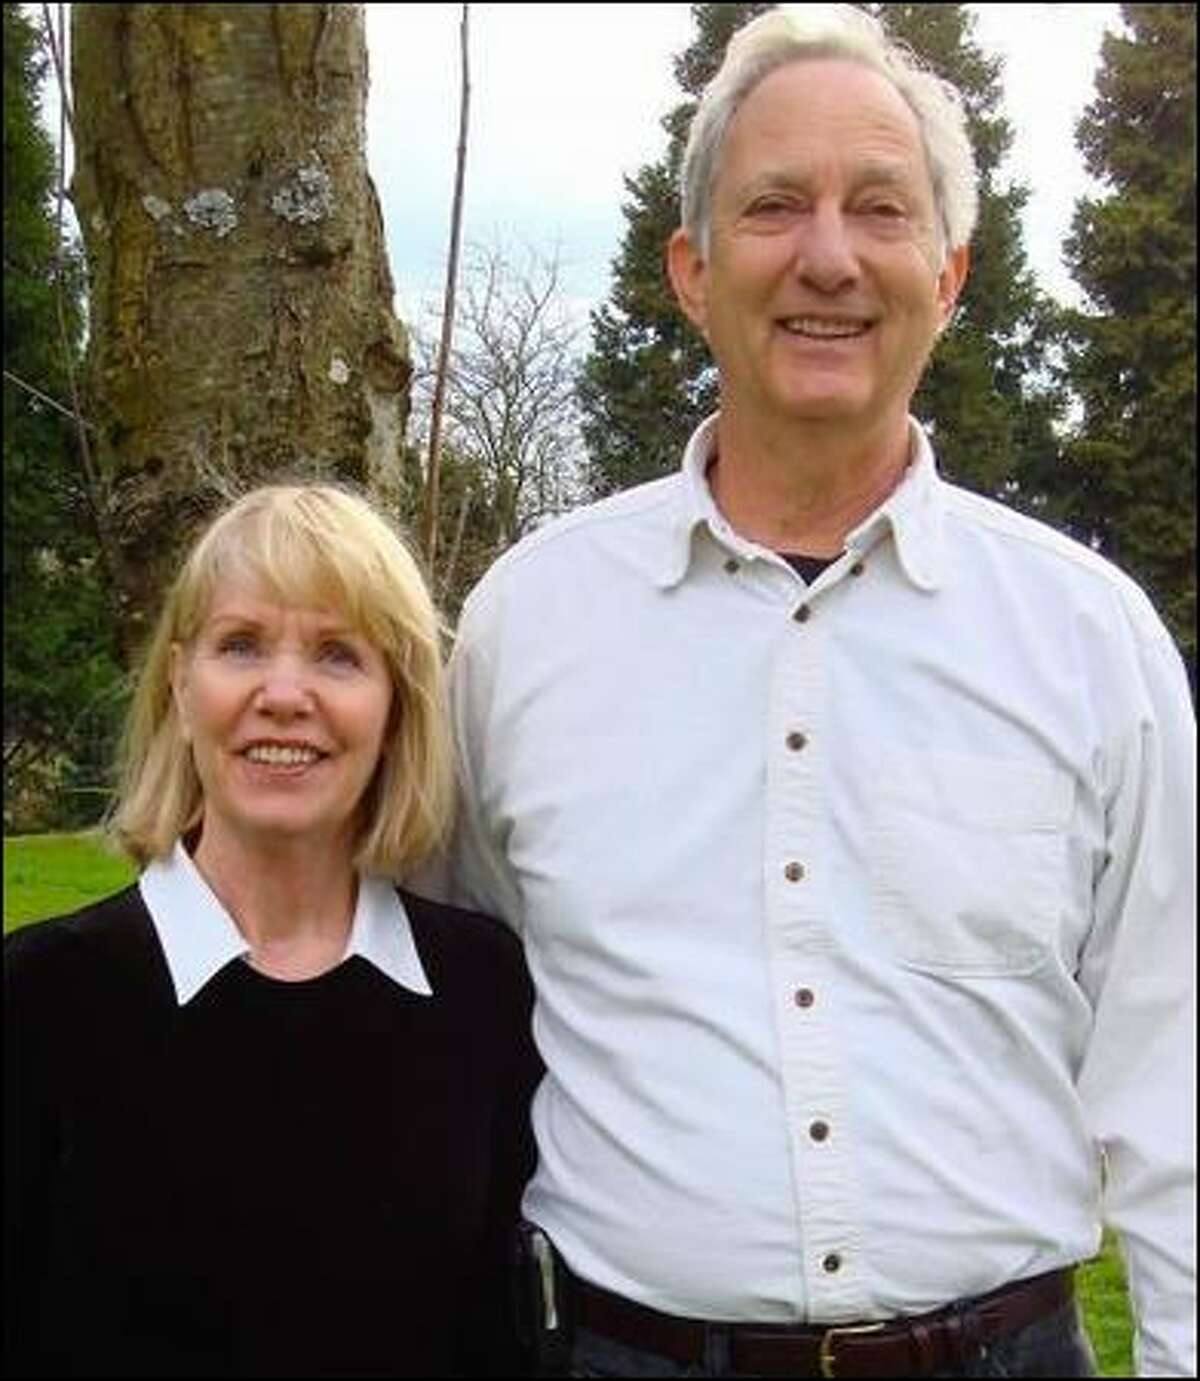 Melodie Anderson and John Babcock will be the first couple to wed at West Seattle's Admiral Theater.